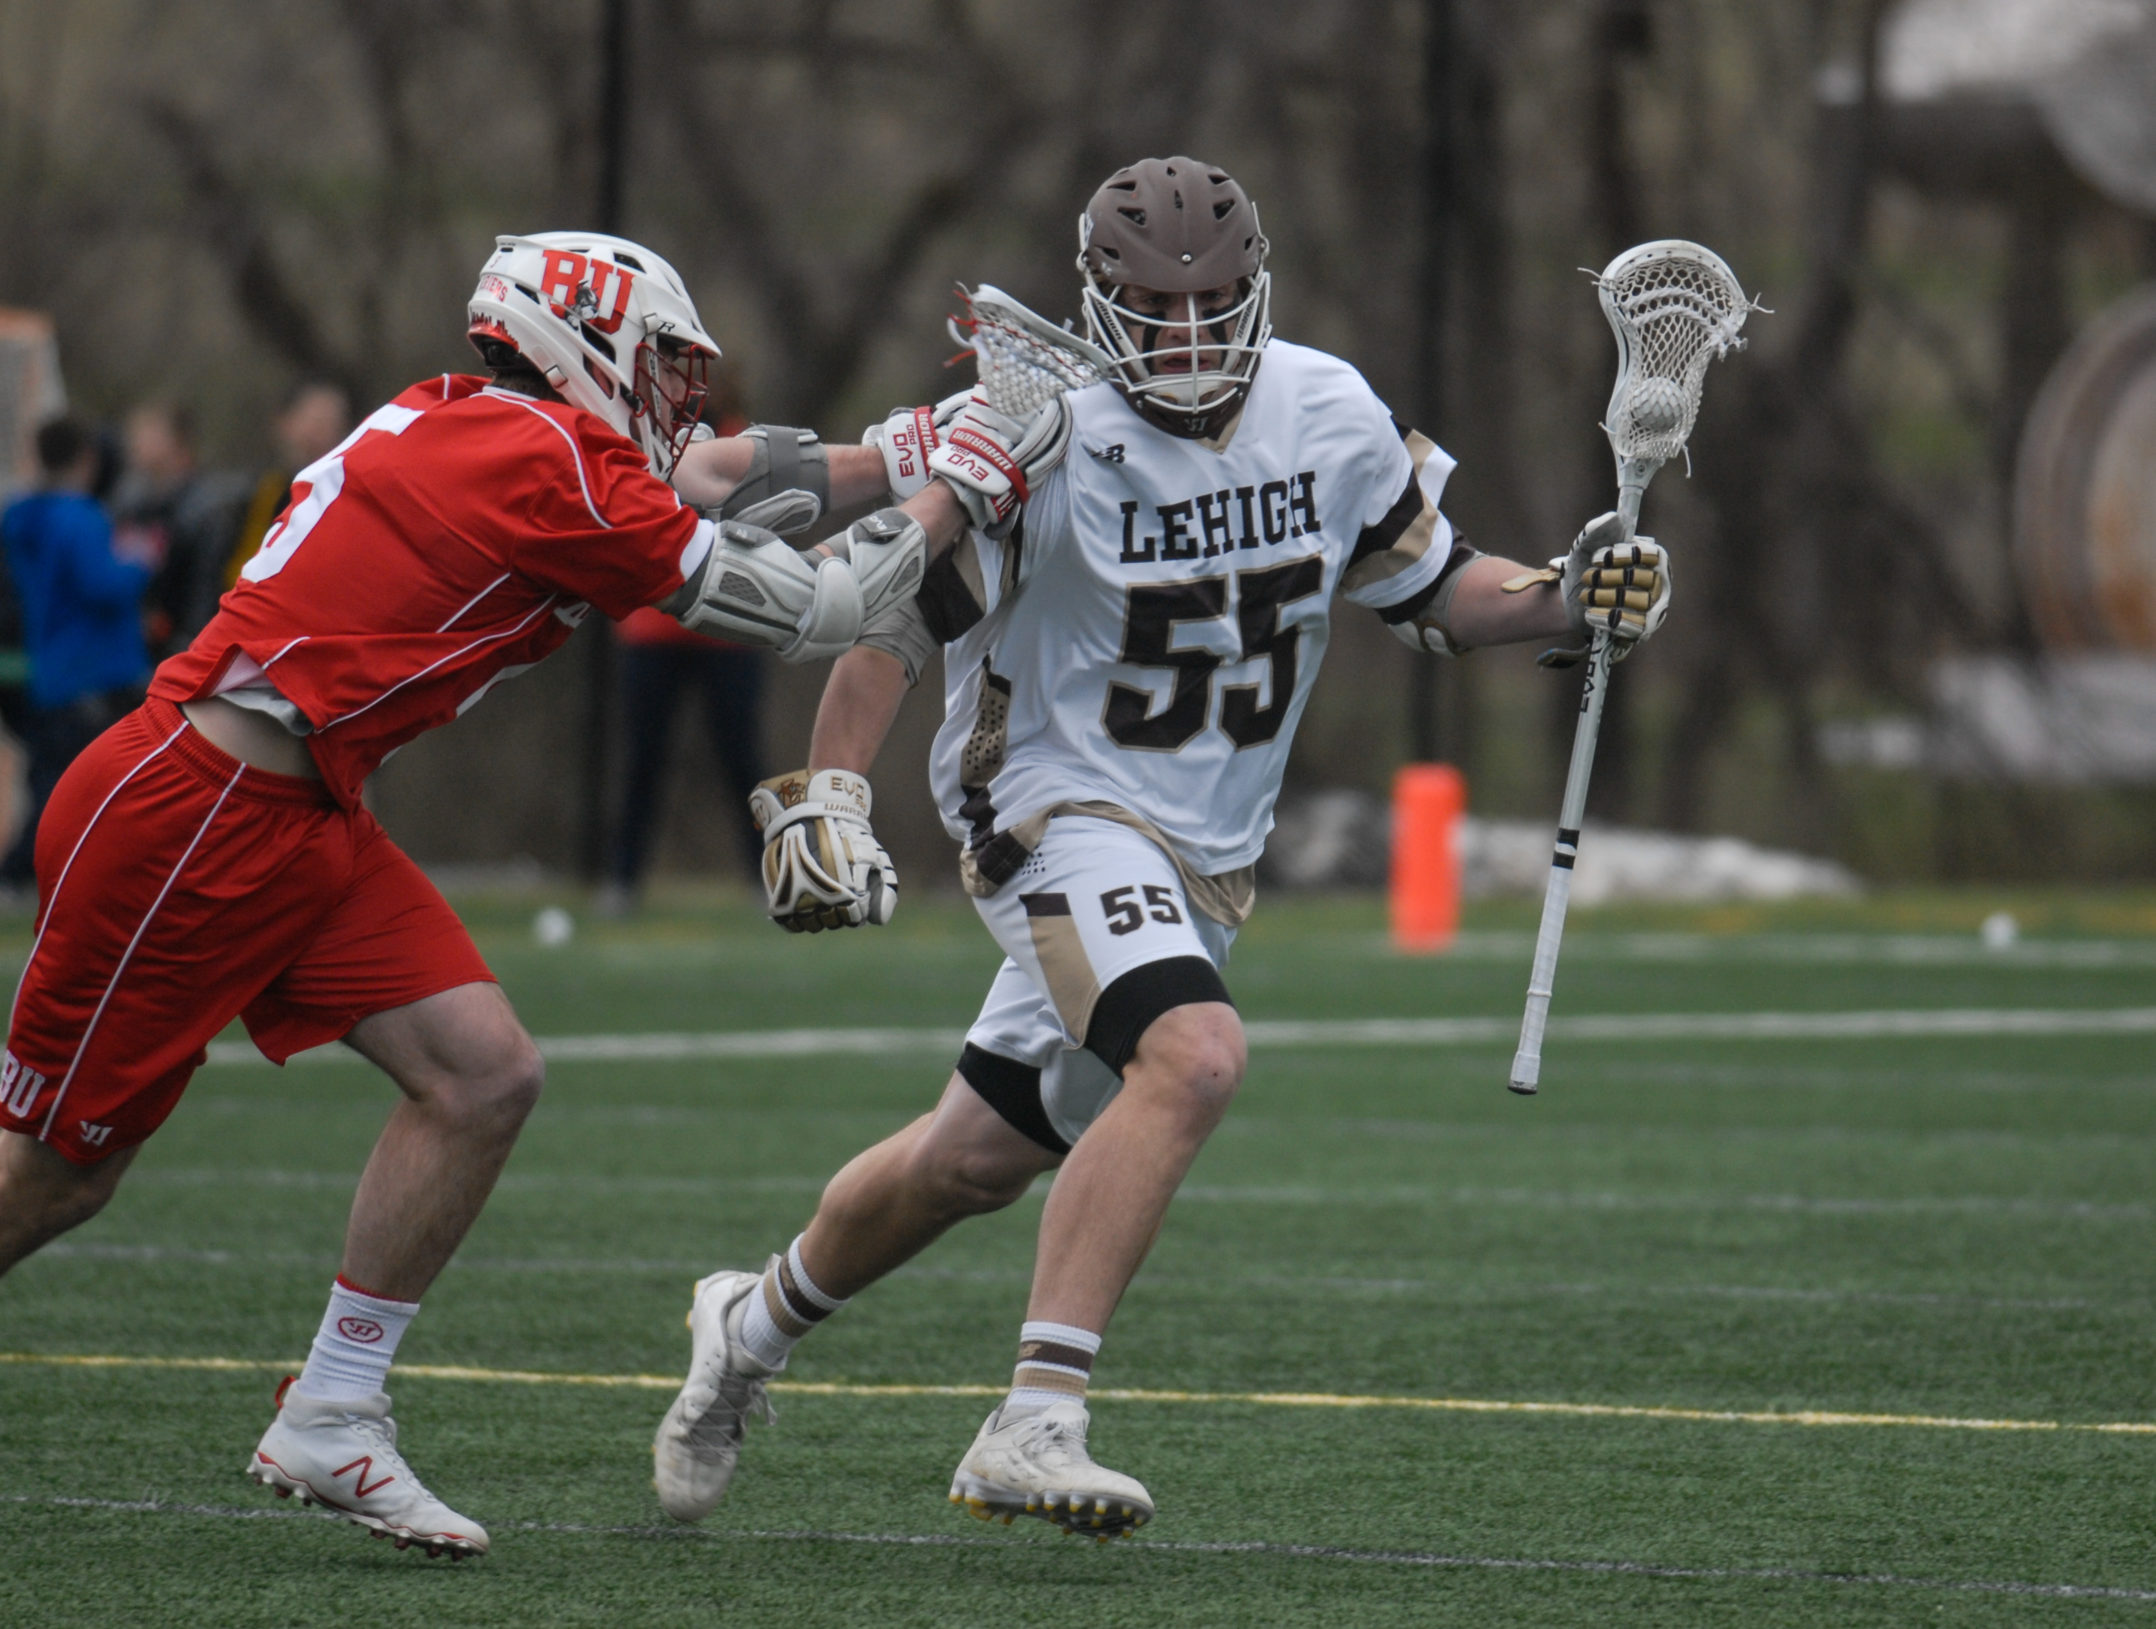 Lehigh freshmen midfielder Andrew Eichelberger tries to avoid a check during Lehigh's game against Boston University on Saturday, April 1, 2017, at the Ulrich Sports Complex. Lehigh won with a final score of 10-6. (Erik Thomas/B&W Staff)